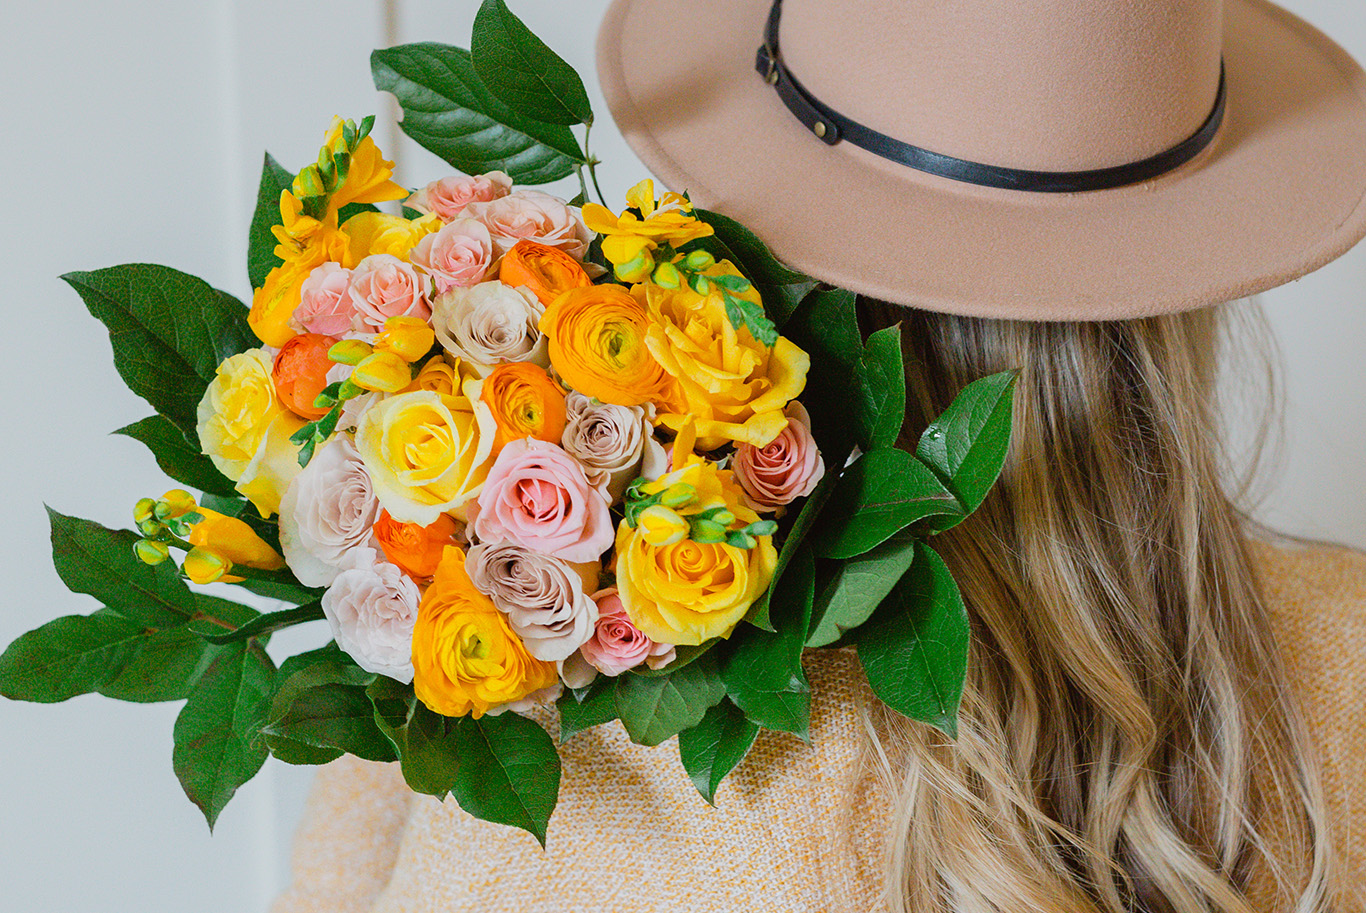 Bouquets inspired by Pantone's Color of the Year